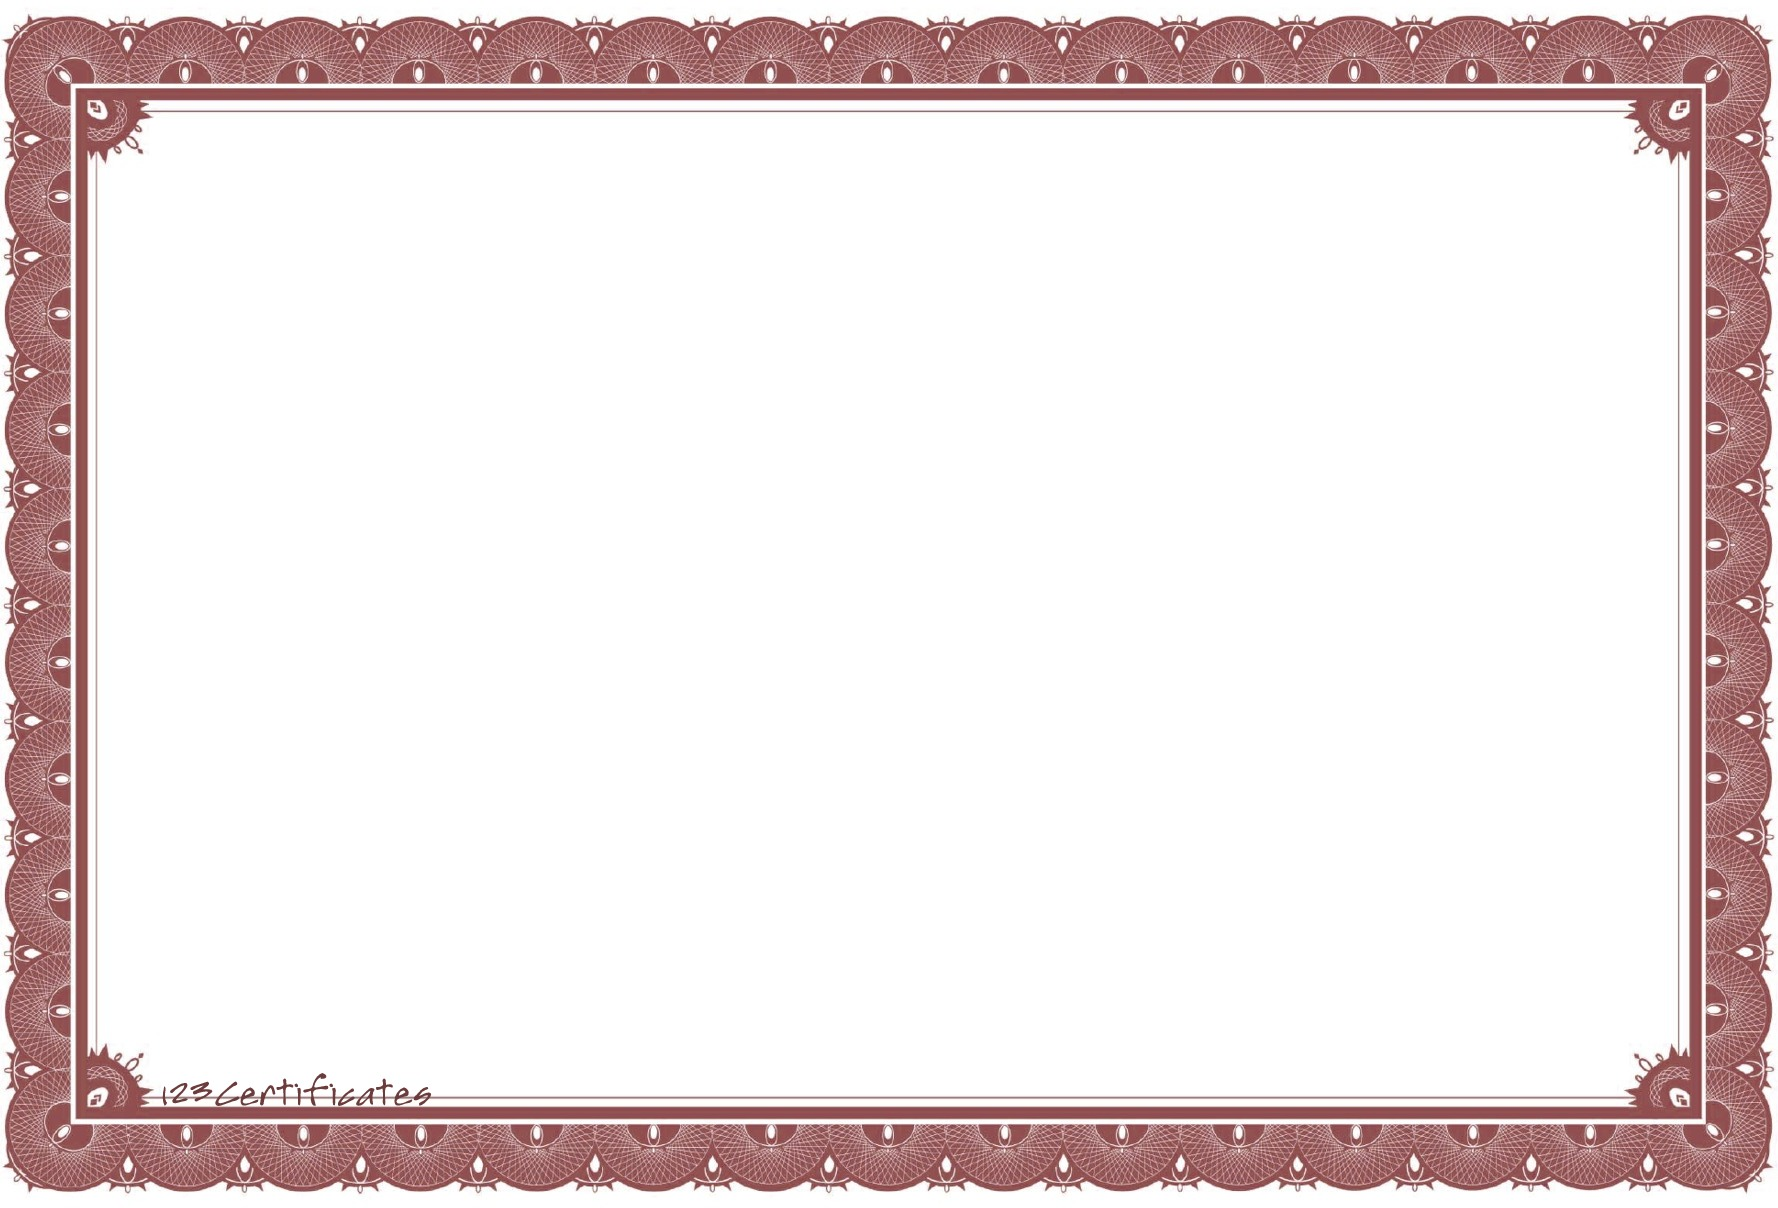 Dark red scalloped edge border 123 certificates